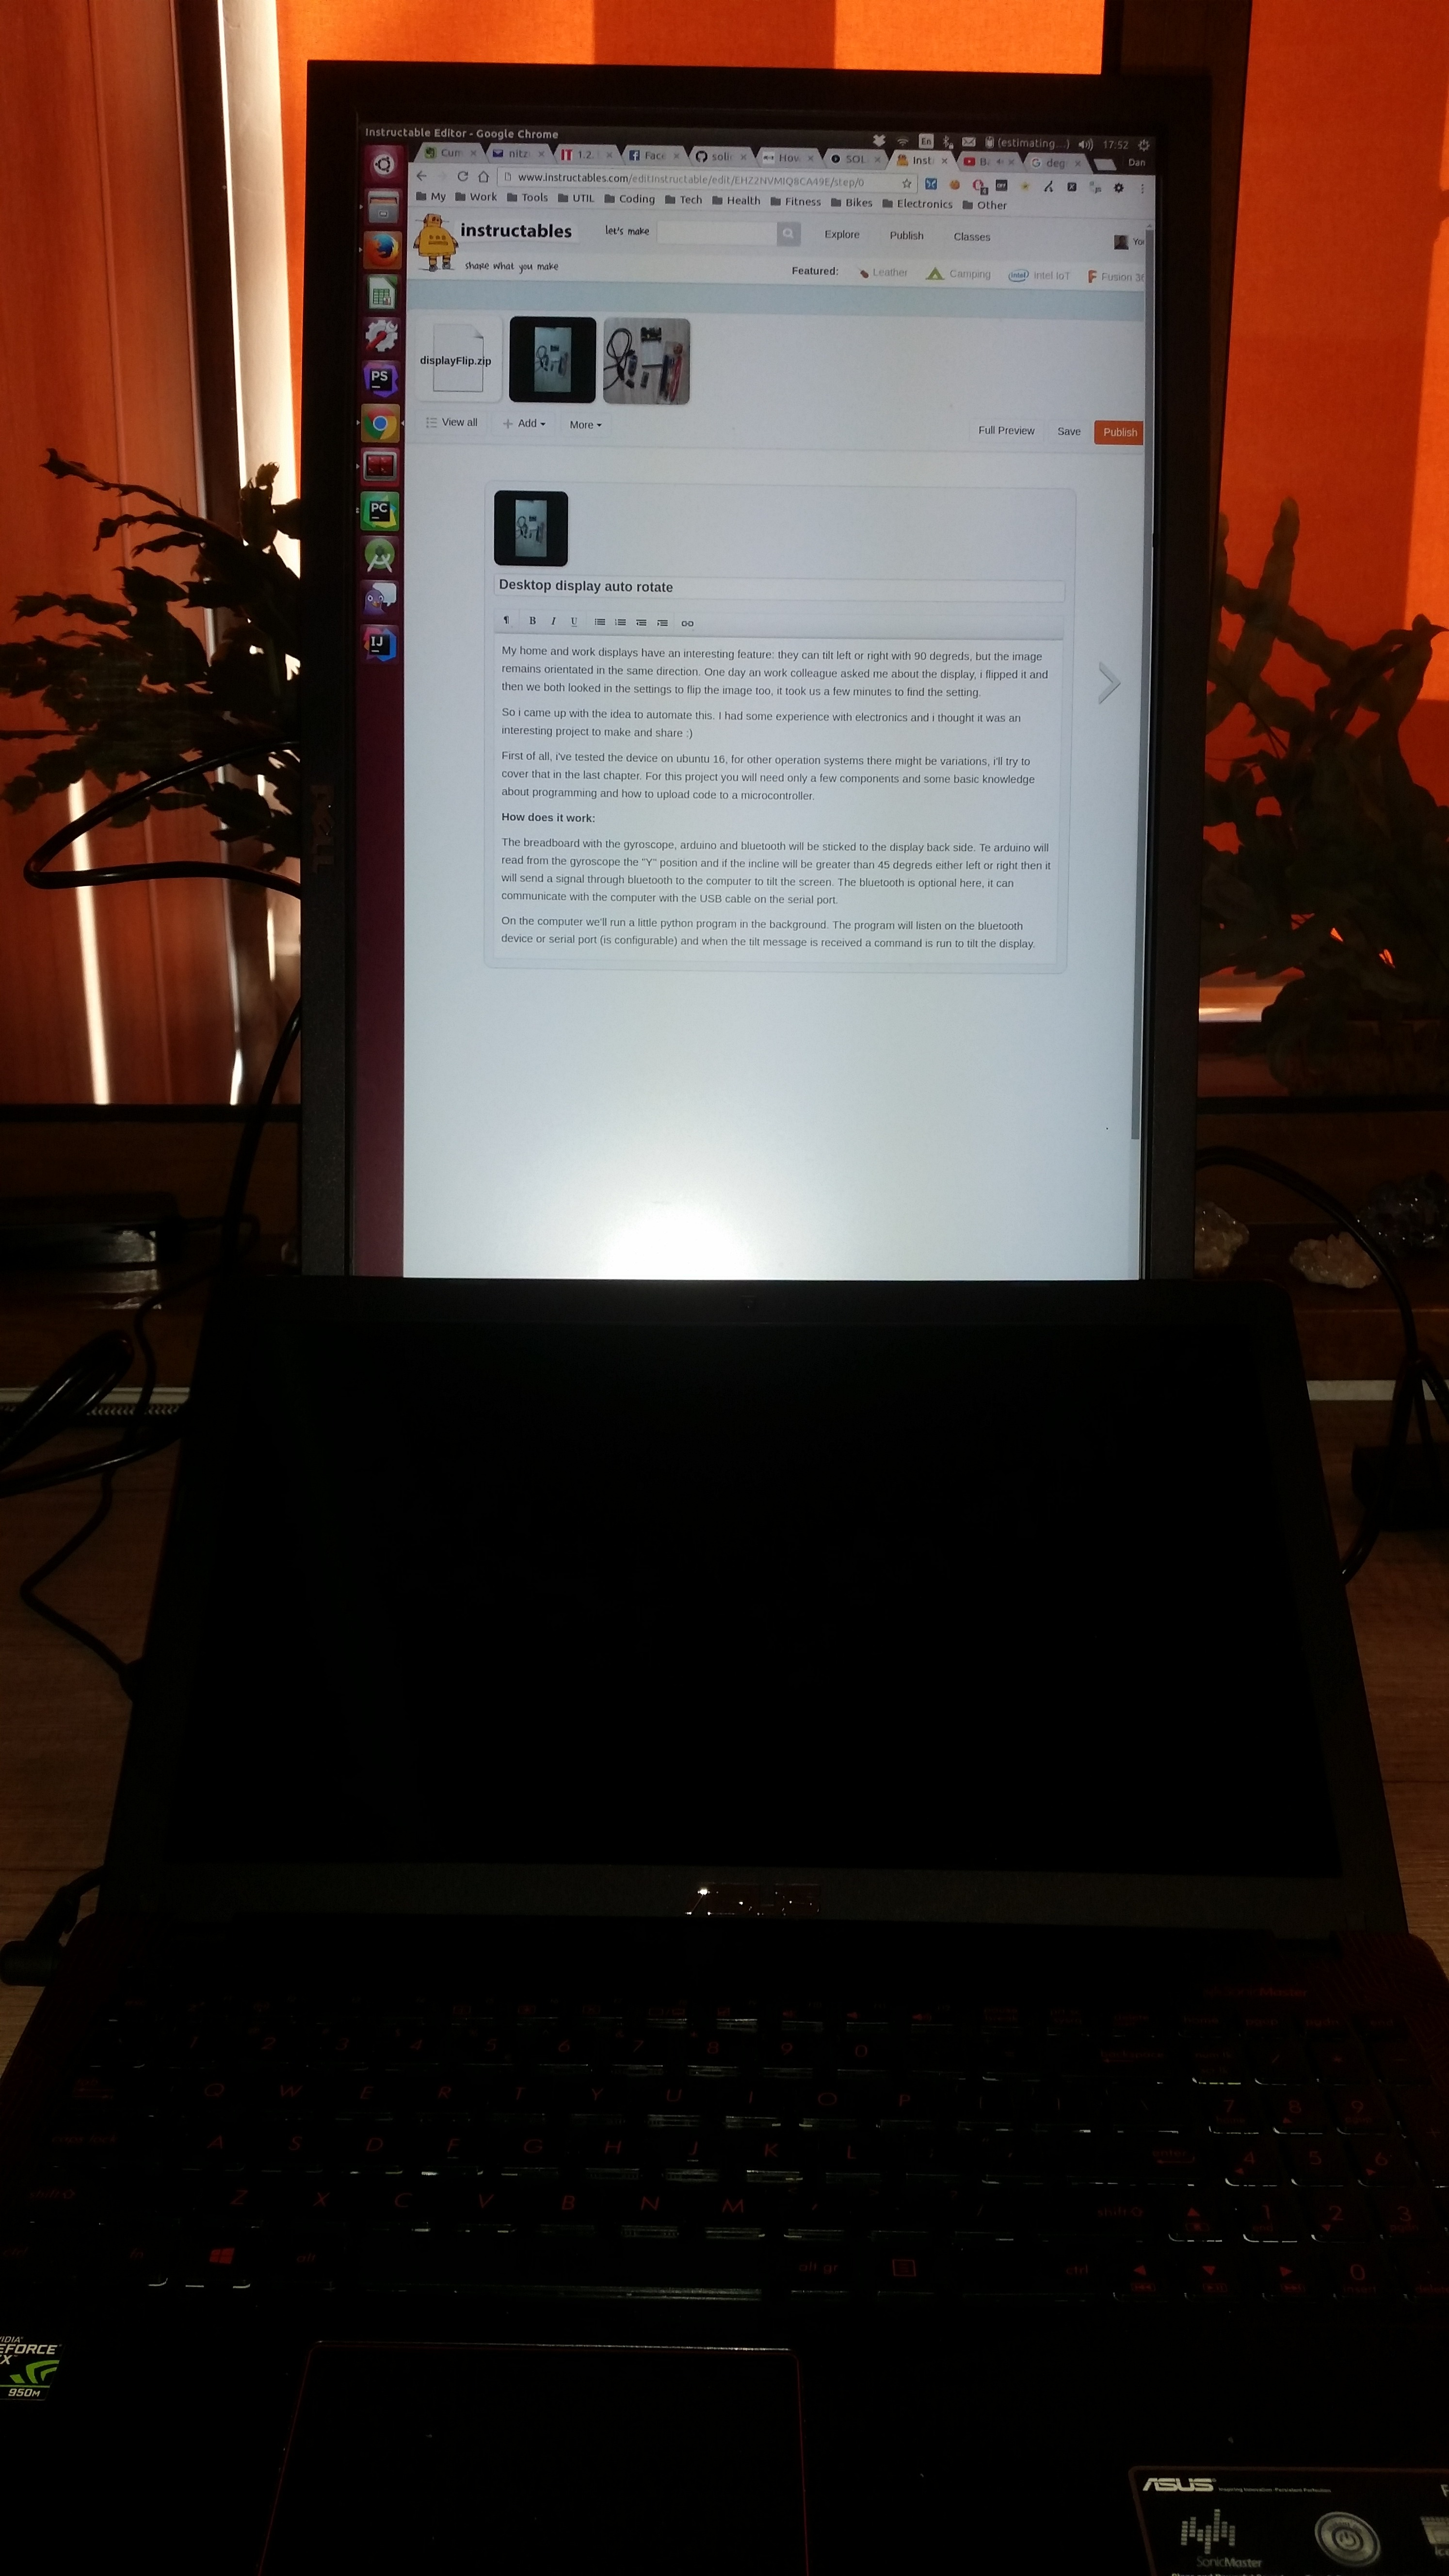 Picture of Desktop Display Auto Rotate